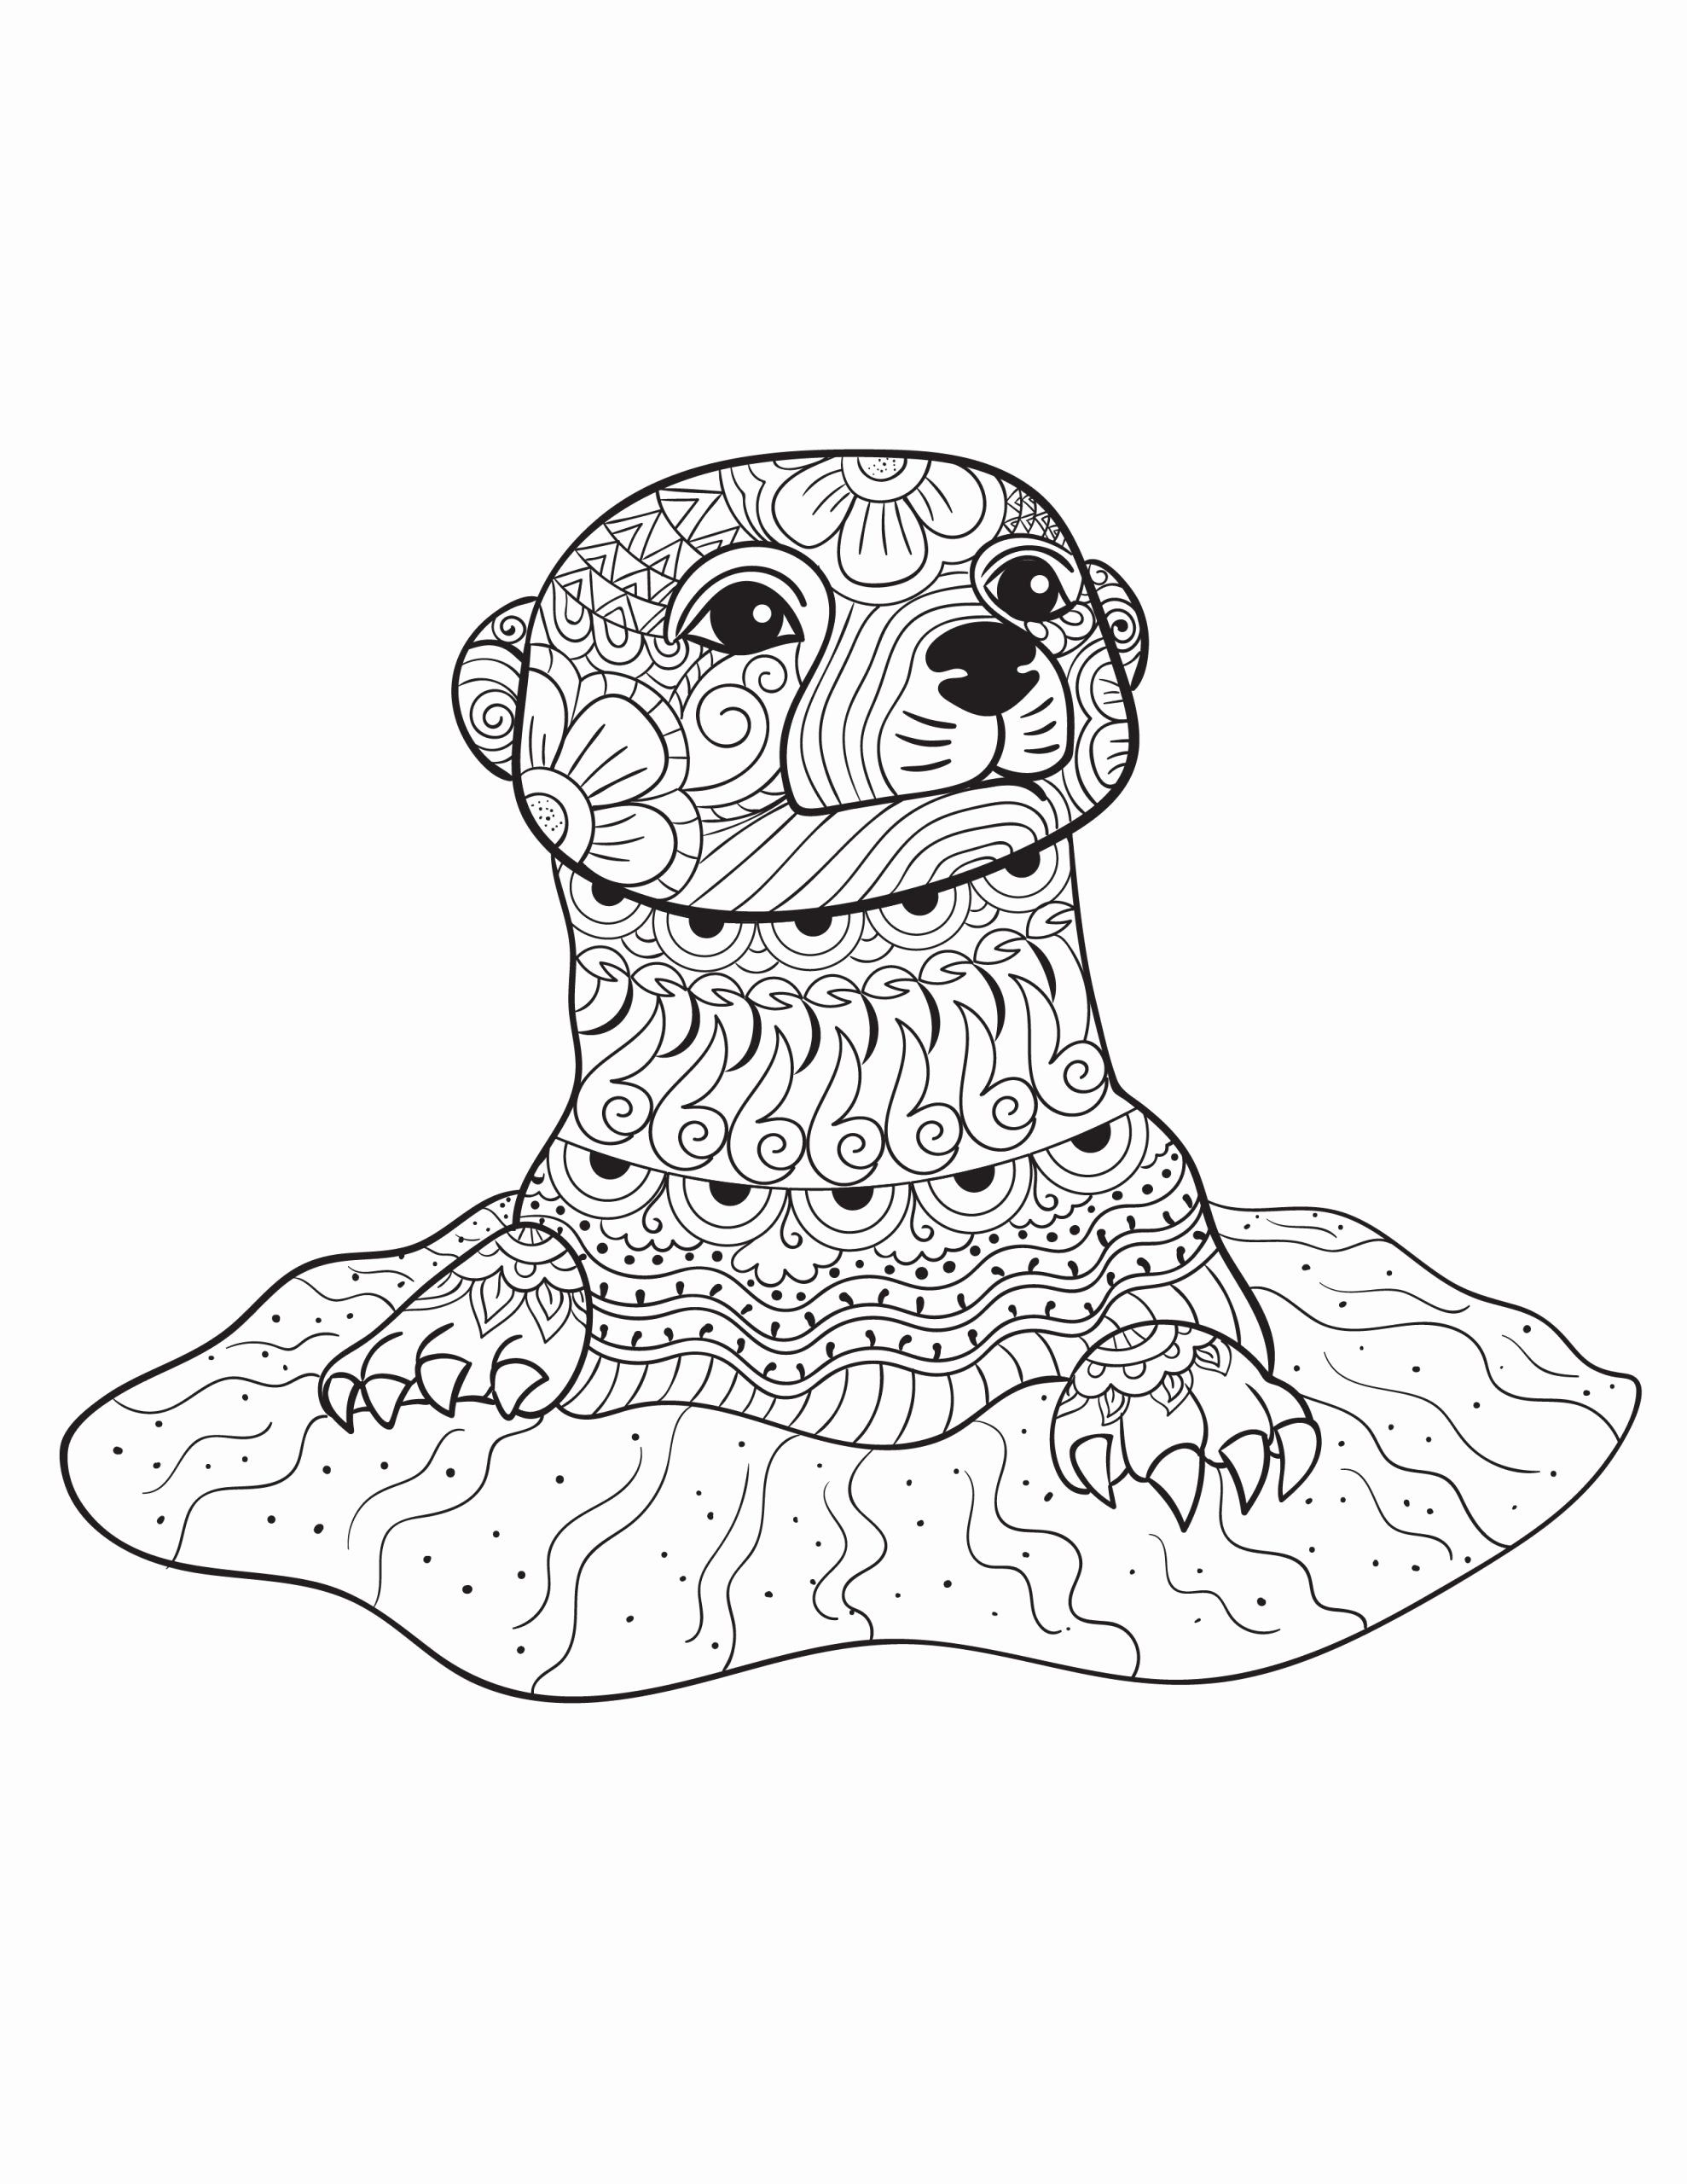 Realistic Animals Coloring Pages In 2020 Bird Coloring Pages